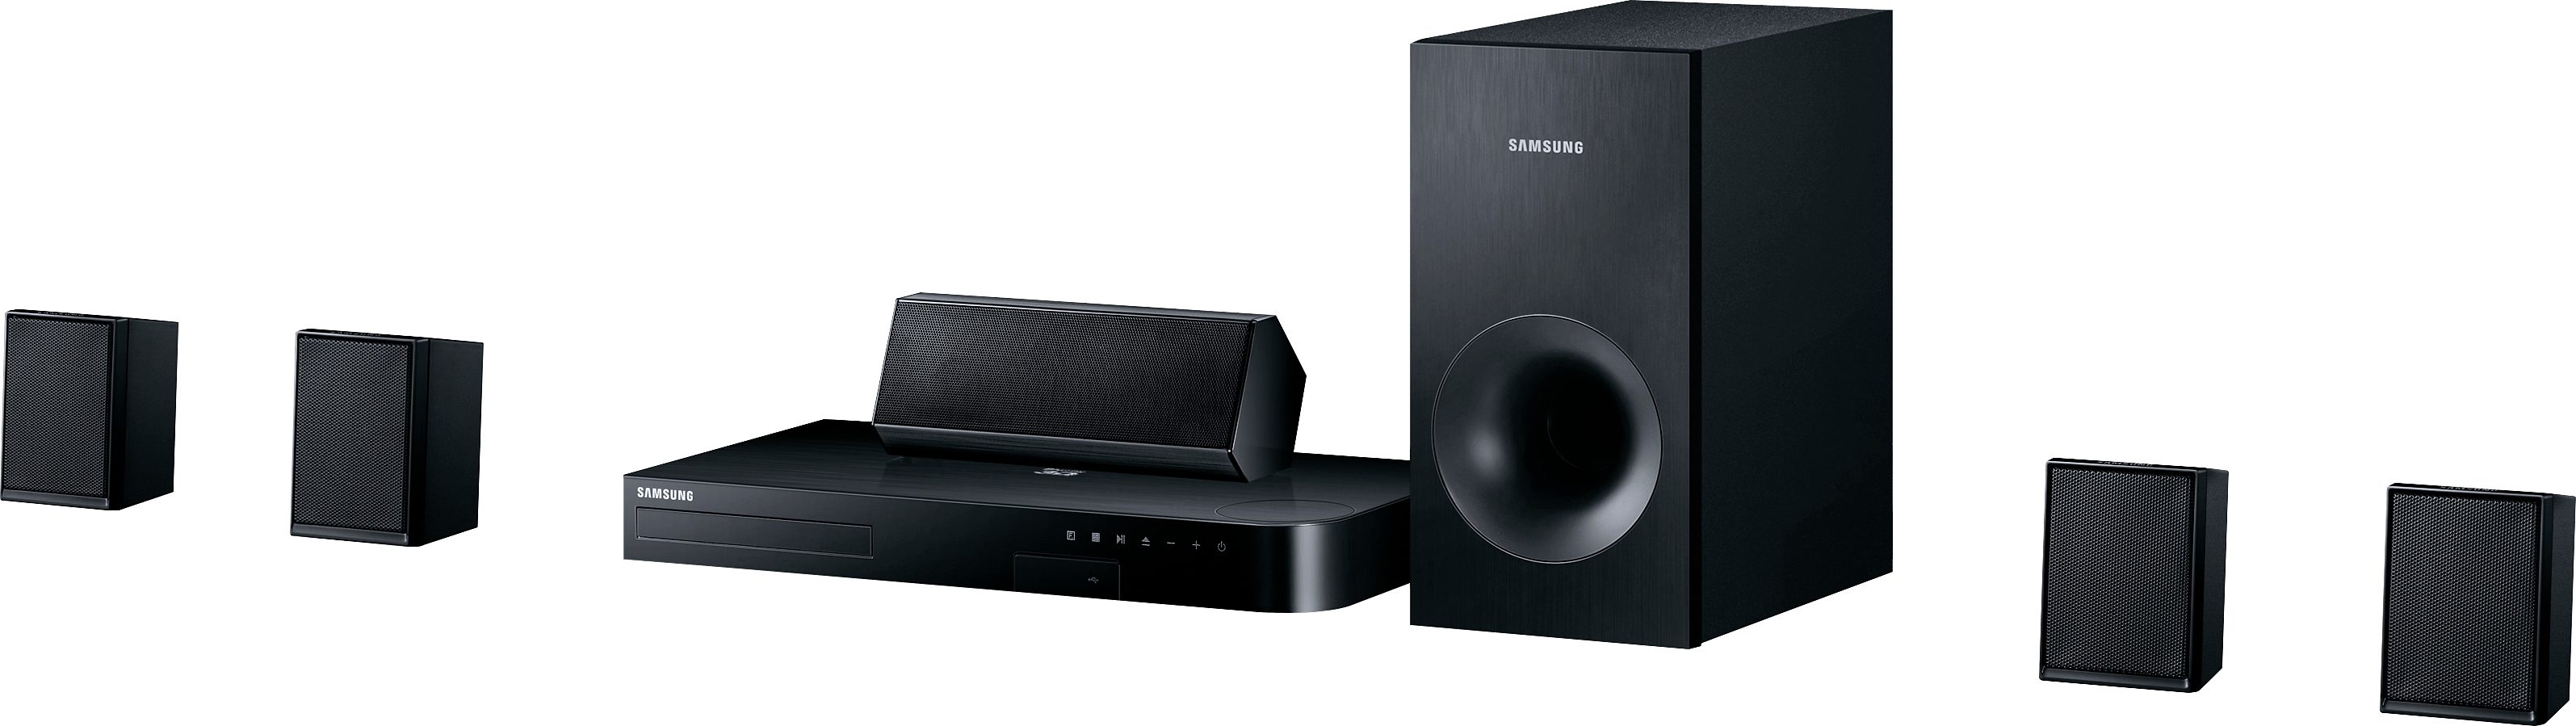 Samsung HT-J4500/EN 5.1 Heimkinosystem (3D Blu-ray Player, 500 W, Bluetooth)